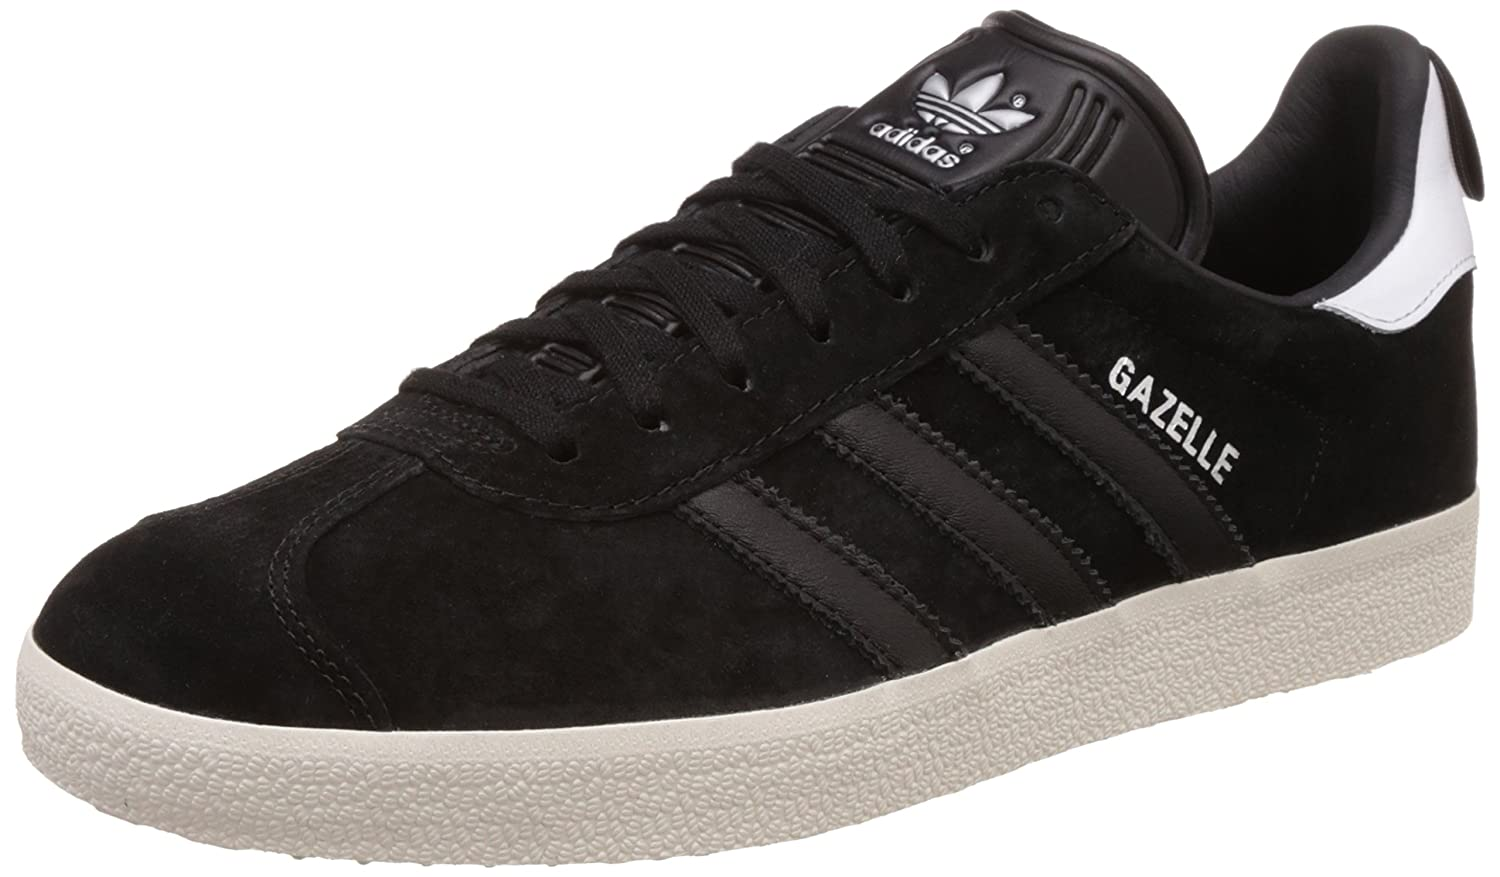 finest selection d4bef e1e35 adidas Originals Mens Gazelle Vappnk, White and Goldmt Leather Sneakers  Buy Online at Low Prices in India - Amazon.in